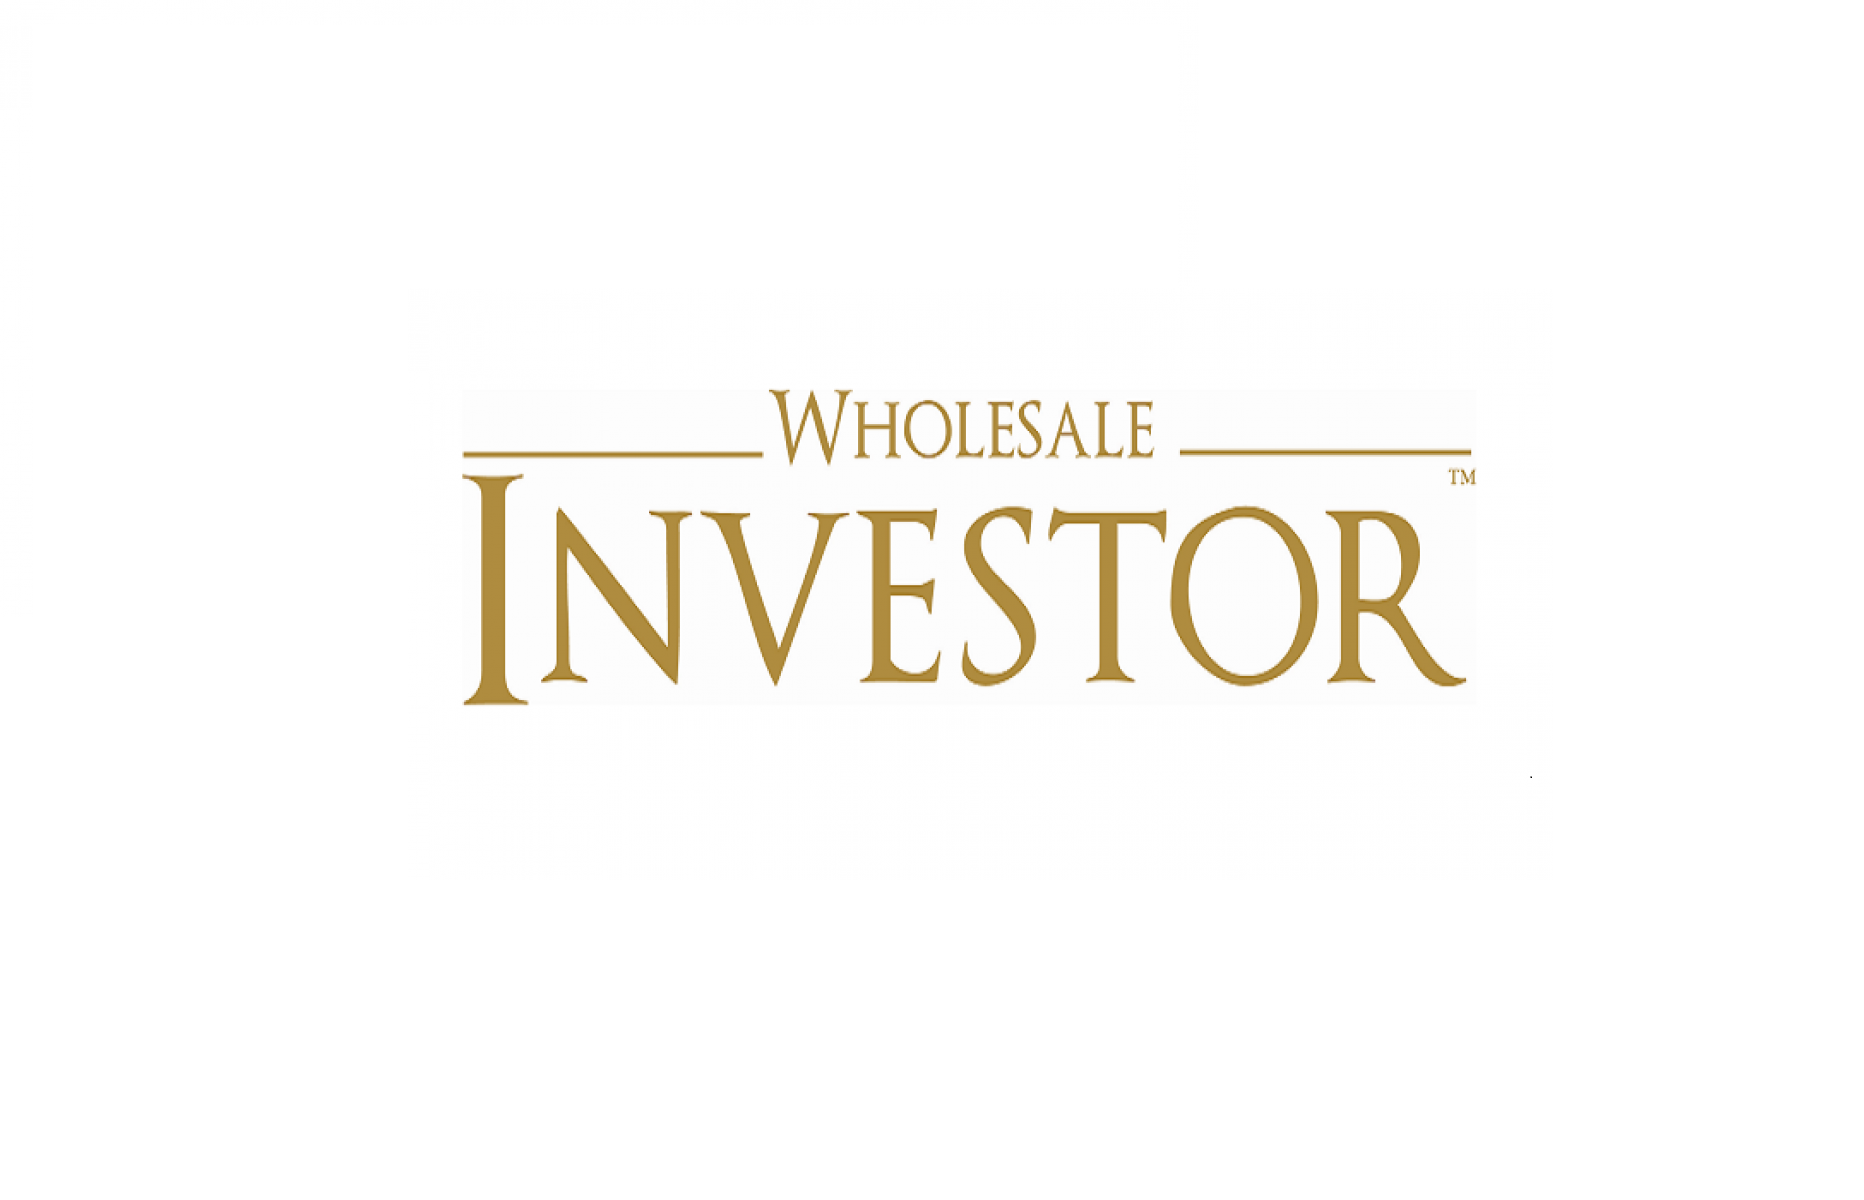 Starting and Building Wholesale Investor: 10 Years On